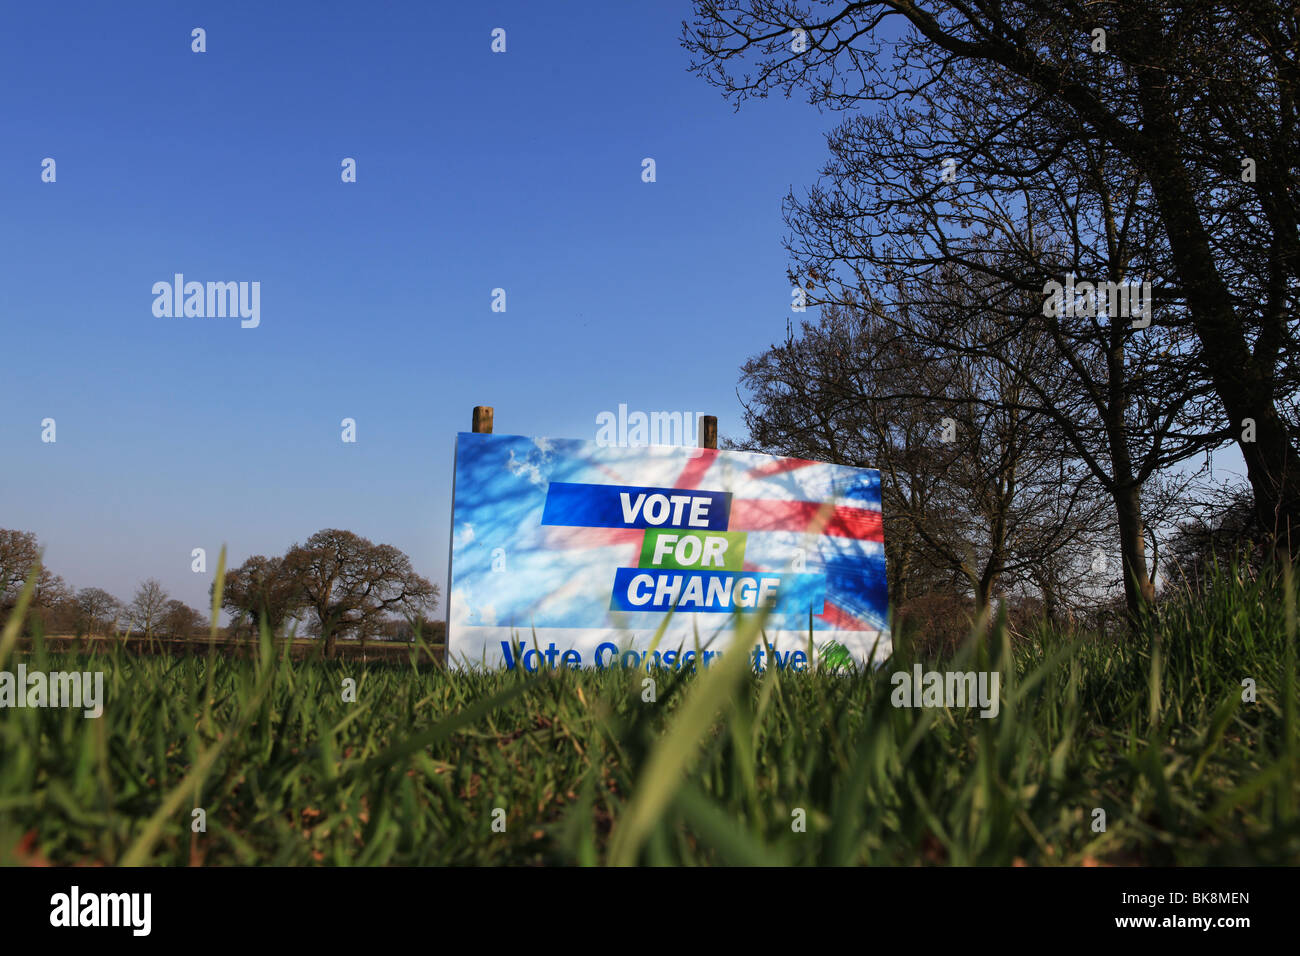 Conservative Party General Election 2010 banner in a field in the UK against a blue sky - Stock Image